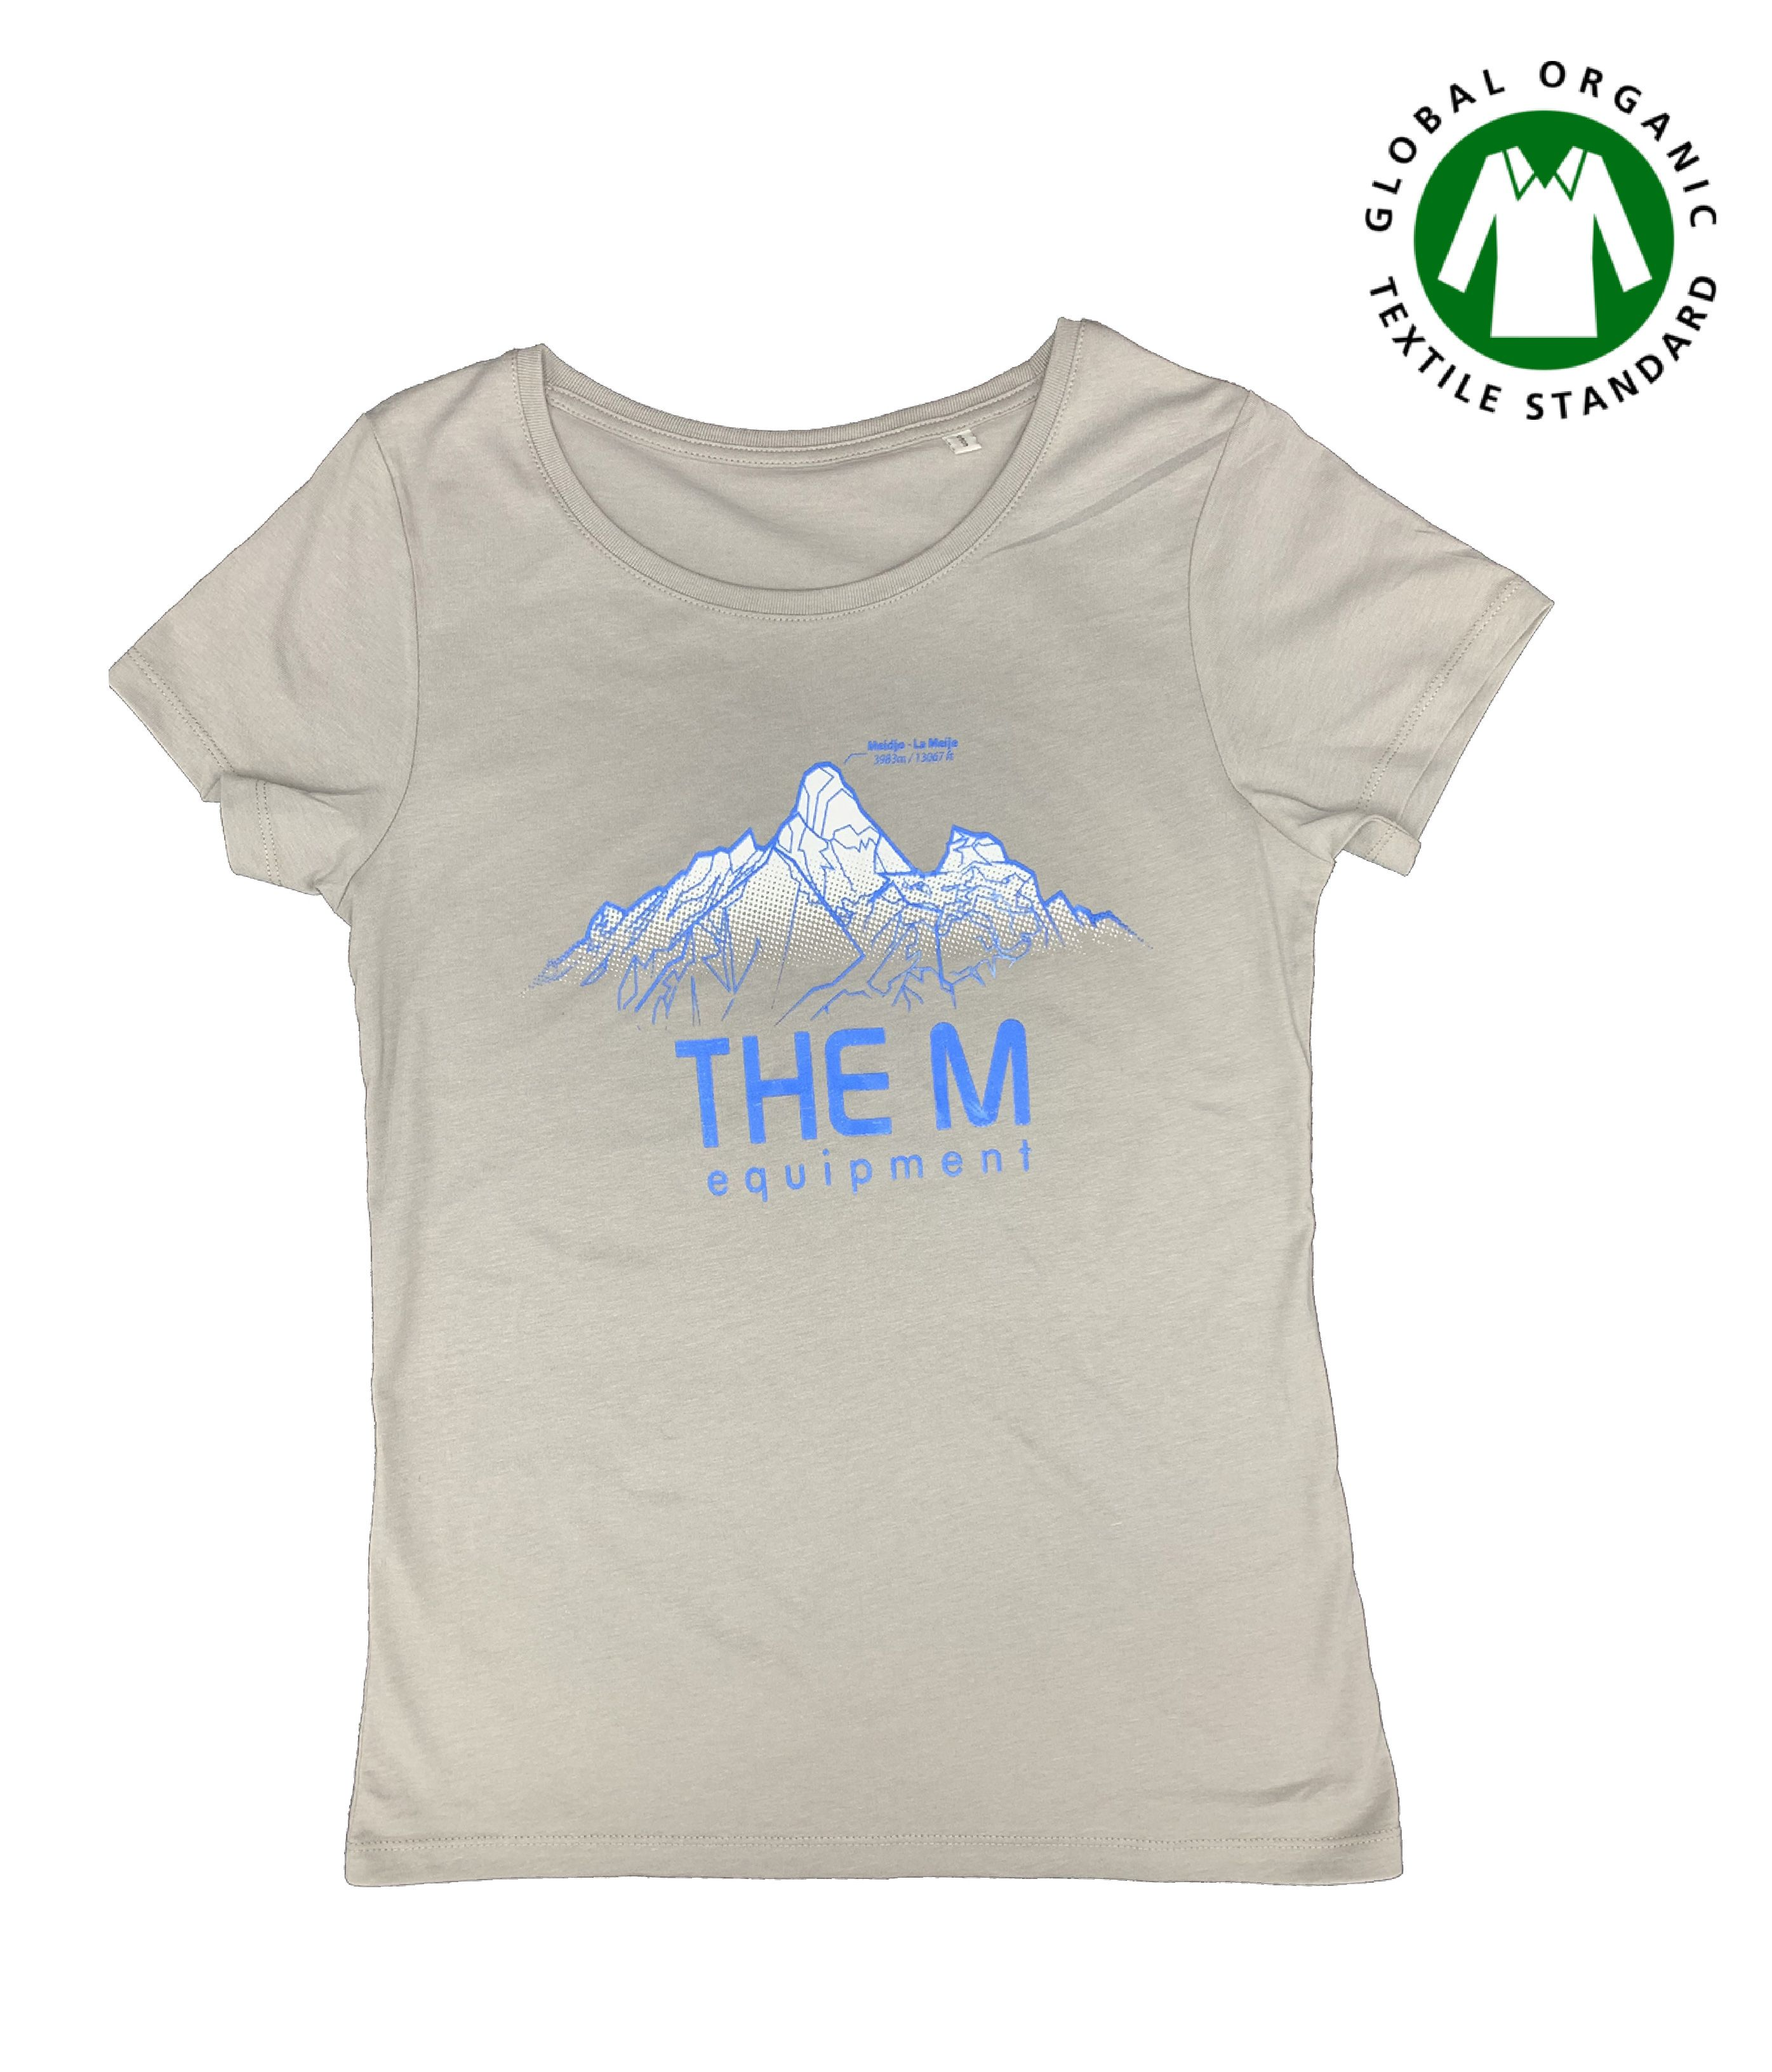 aba8f09463b6 T-shirts Opal Logo for women bio cotton